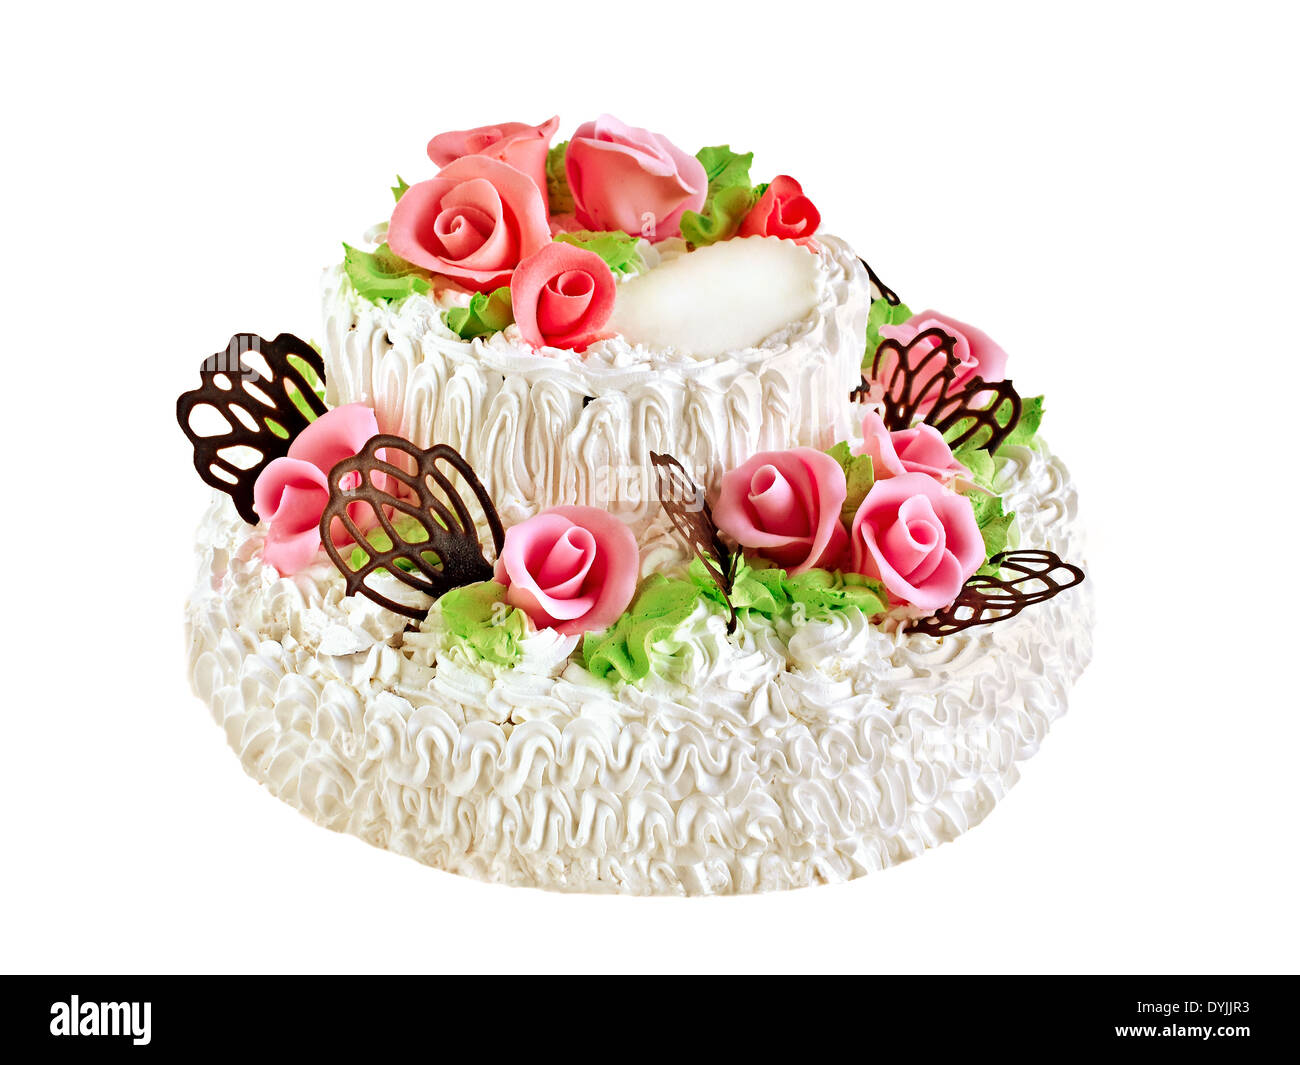 Marvelous Huge Birthday Cake Stock Photo 68636711 Alamy Funny Birthday Cards Online Alyptdamsfinfo